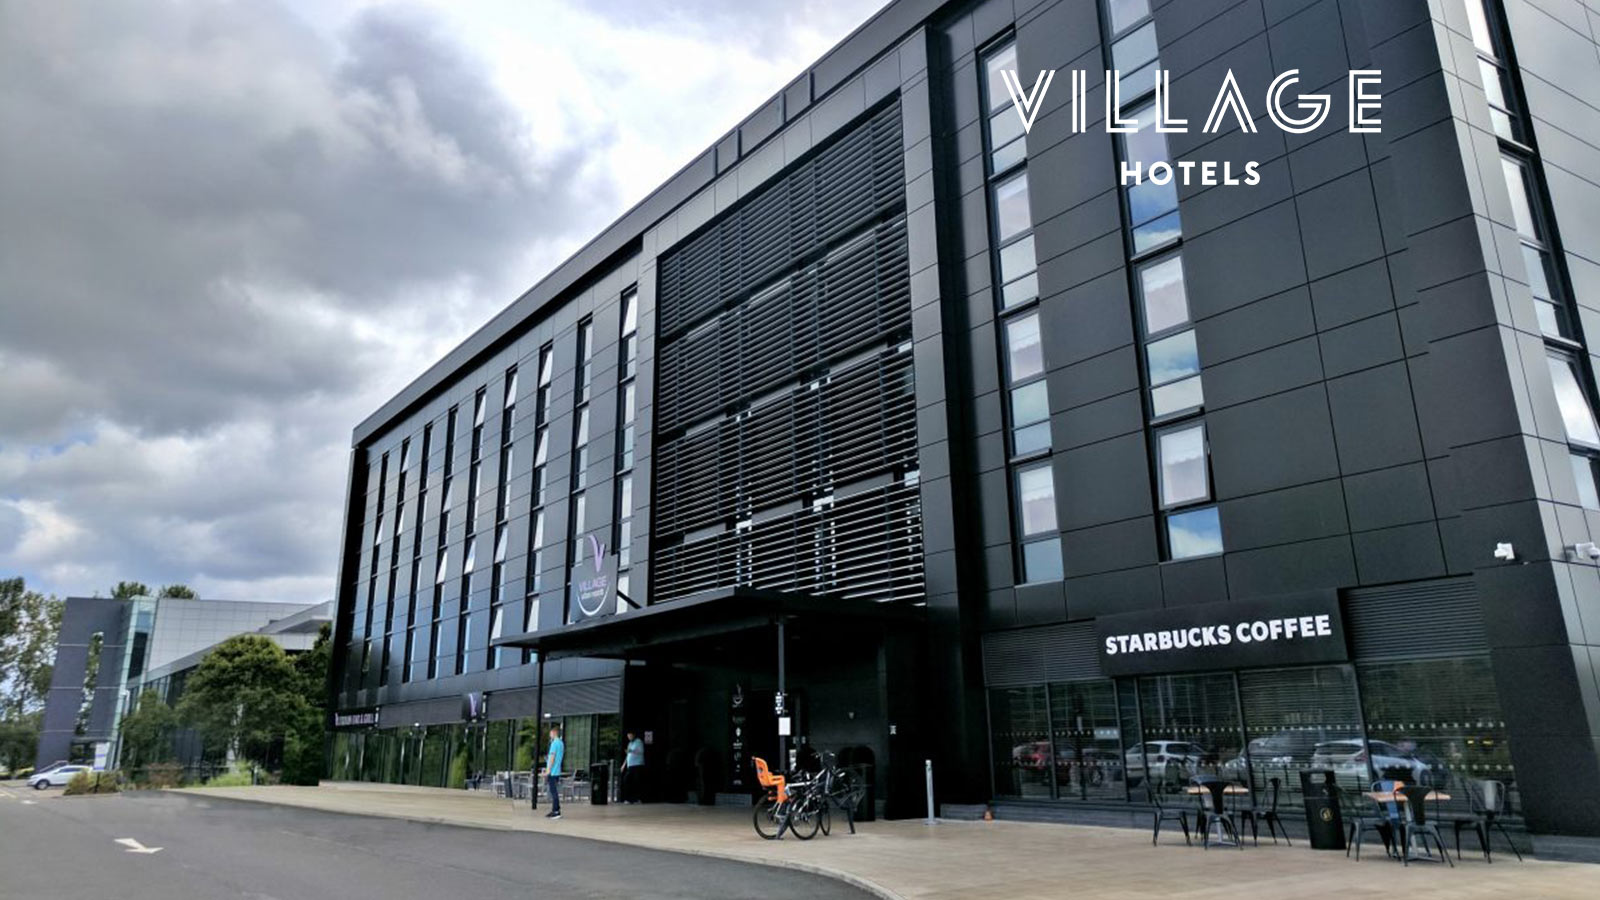 cs-village-hotel-southampton-header.jpg